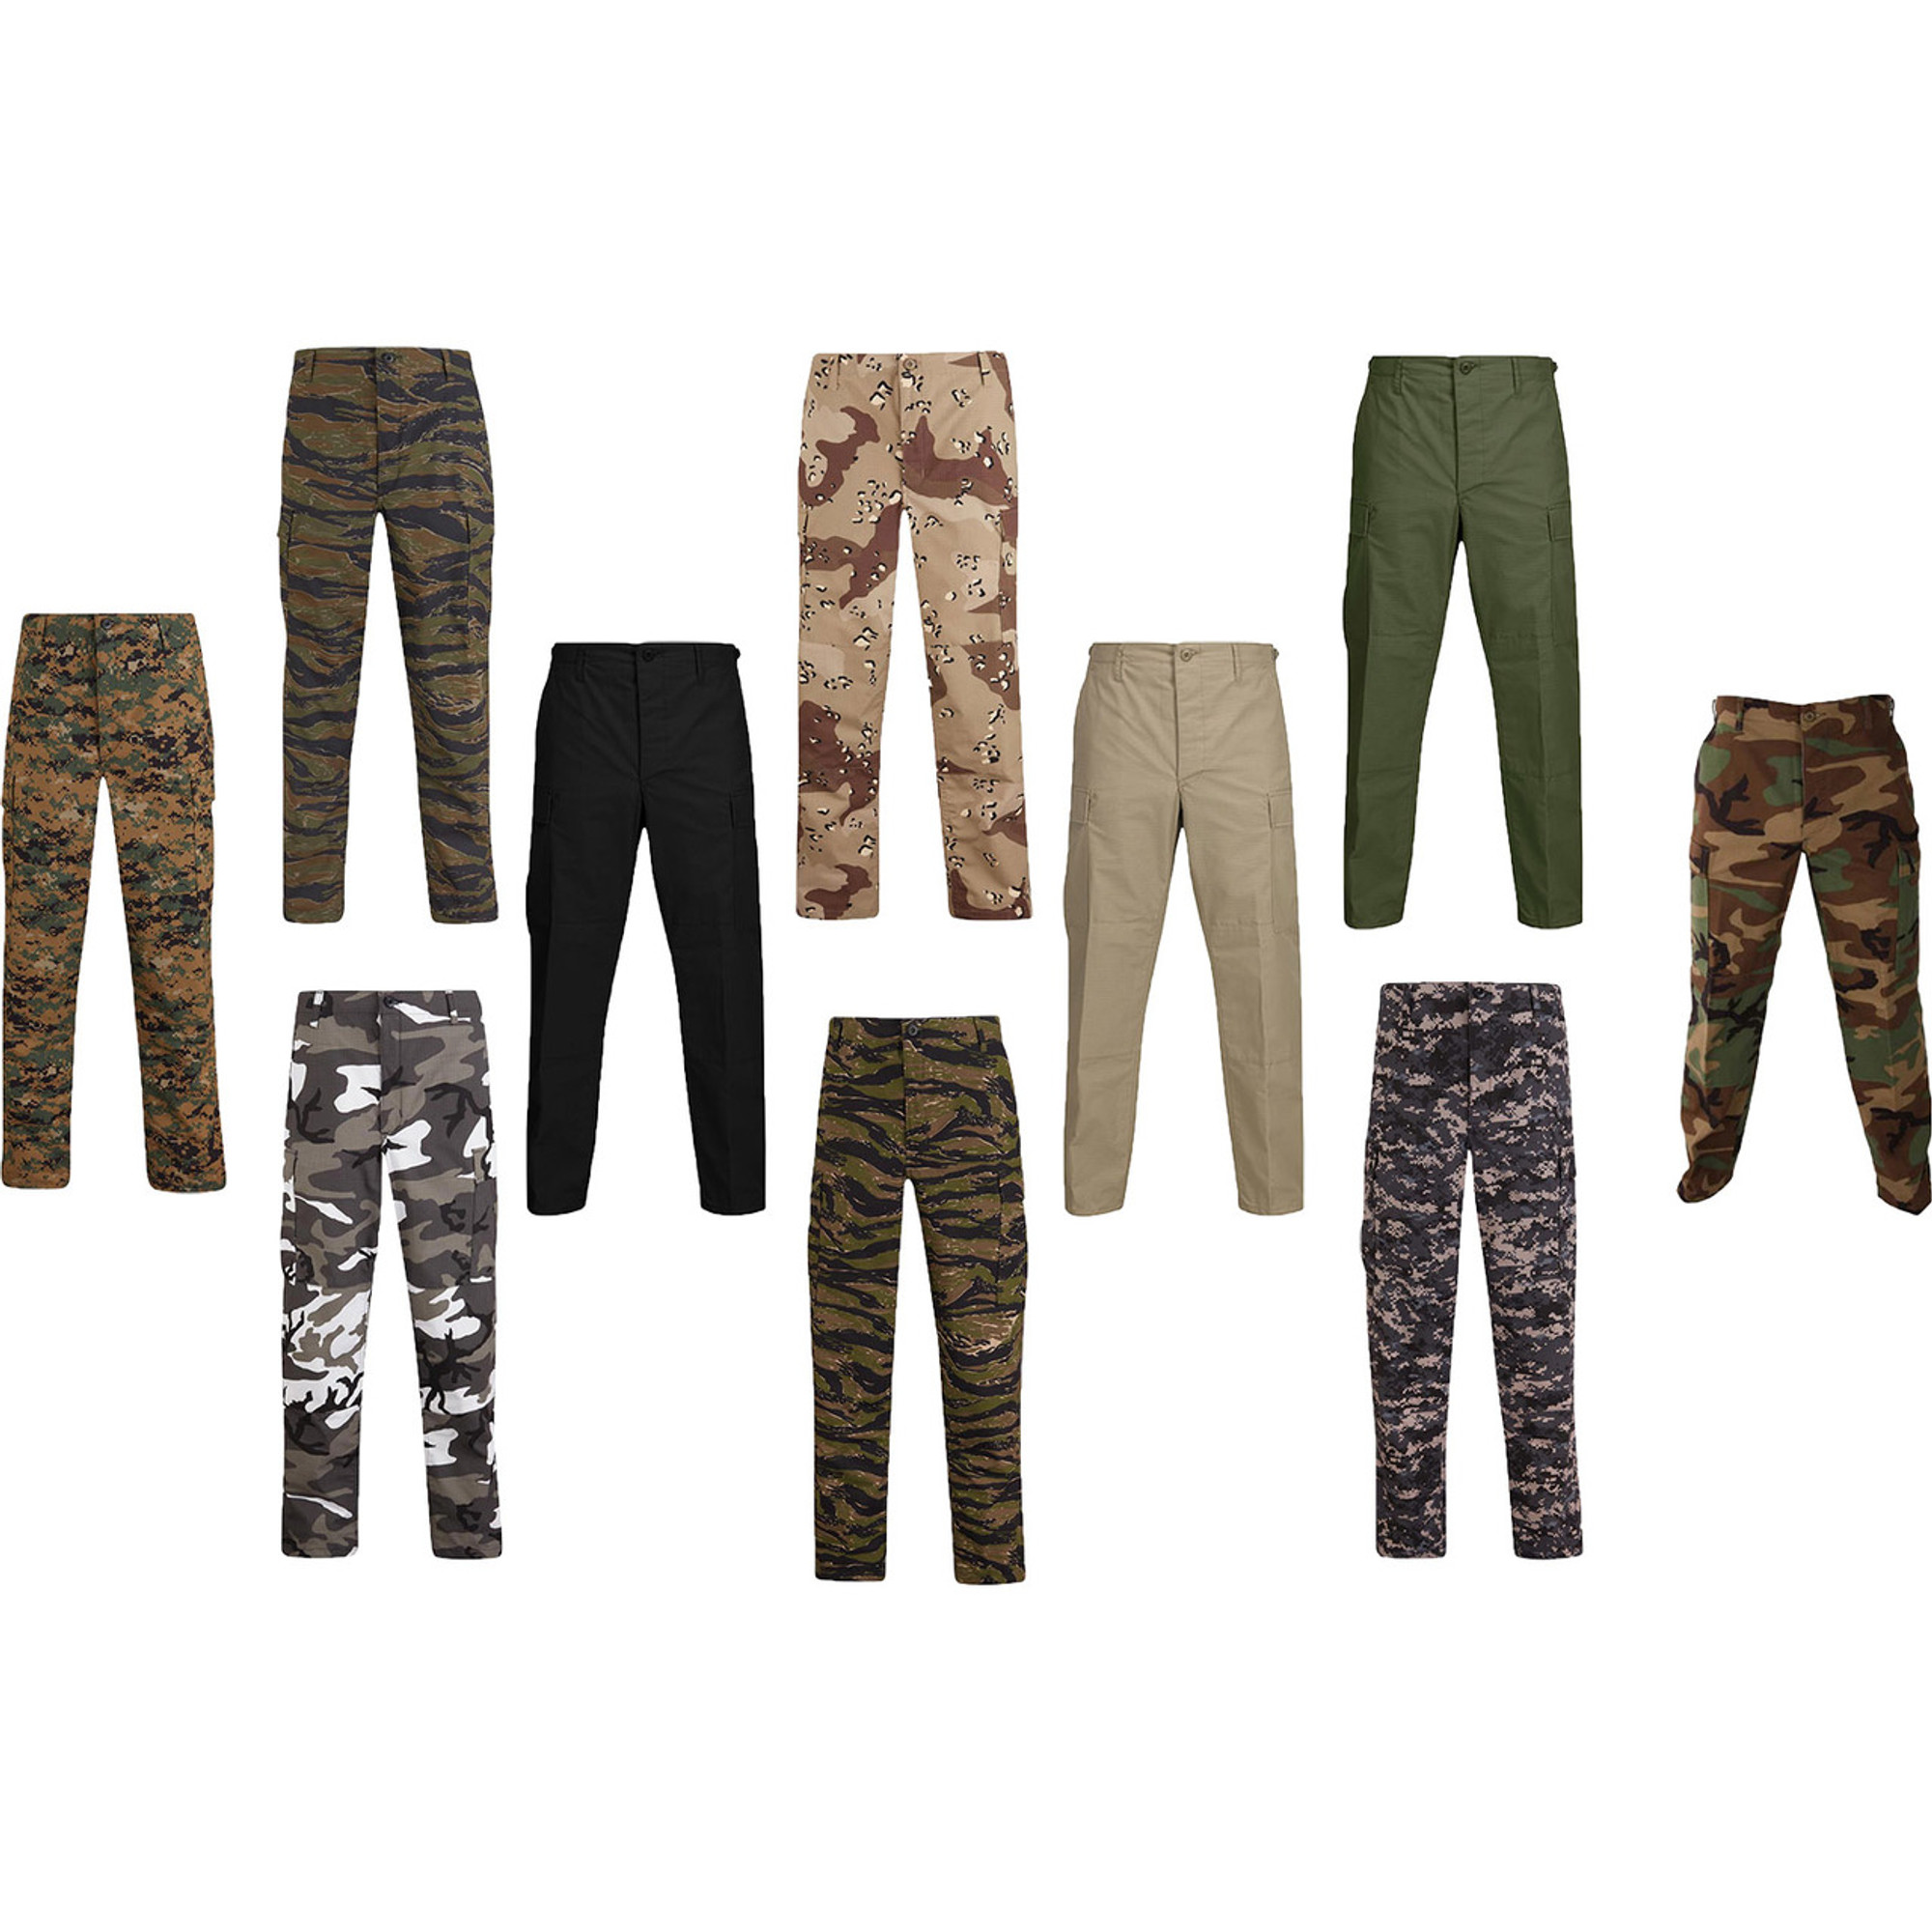 fine craftsmanship sports shoes diverse styles Propper Genuine Gear BDU Cotton Poly Ripstop Military Tactical Trouser Pants